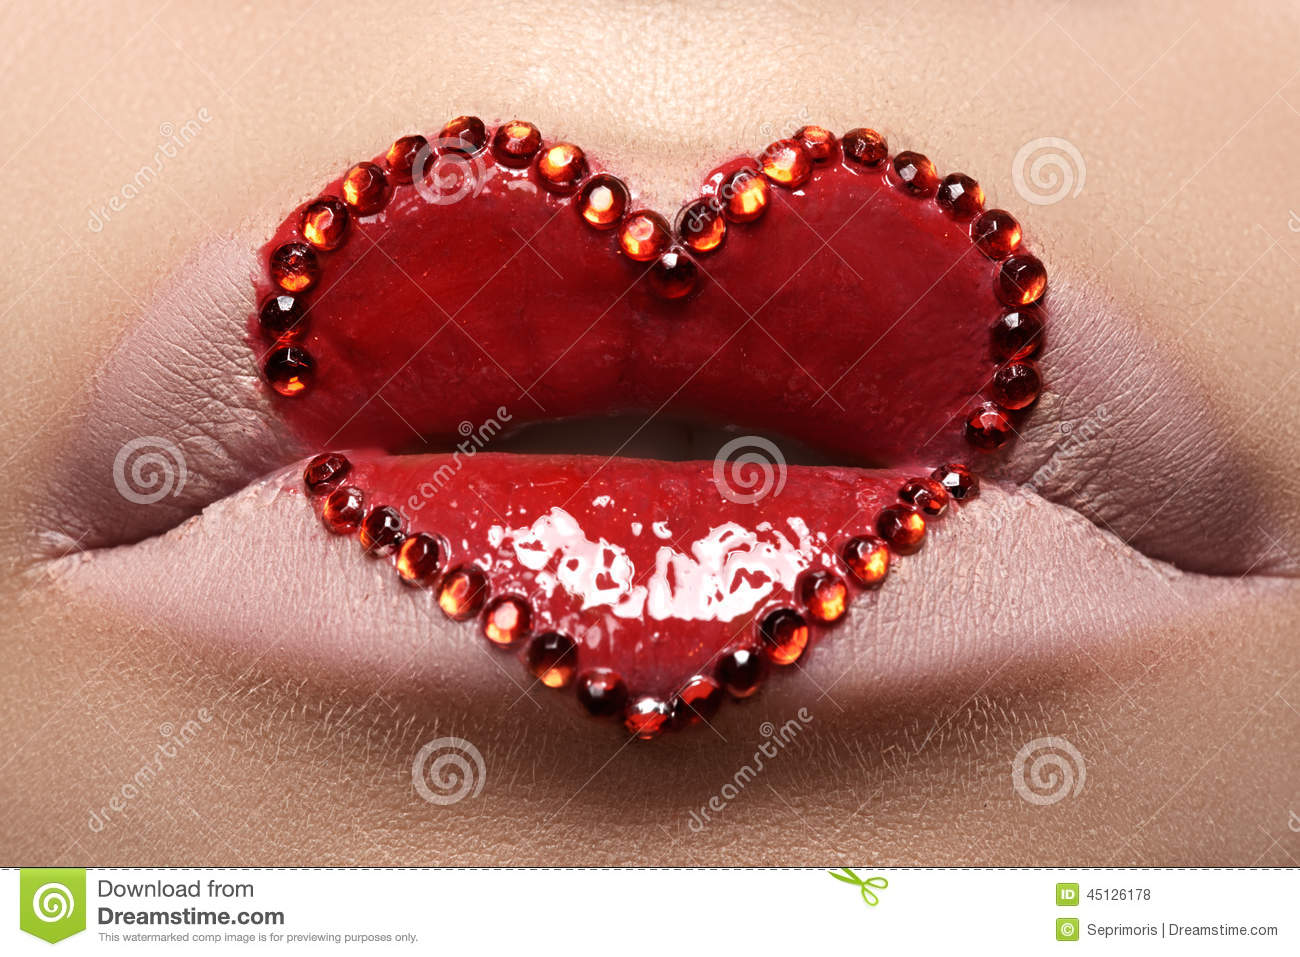 Closeup lips with red heart make-up & rhinestones. Valentines Day style